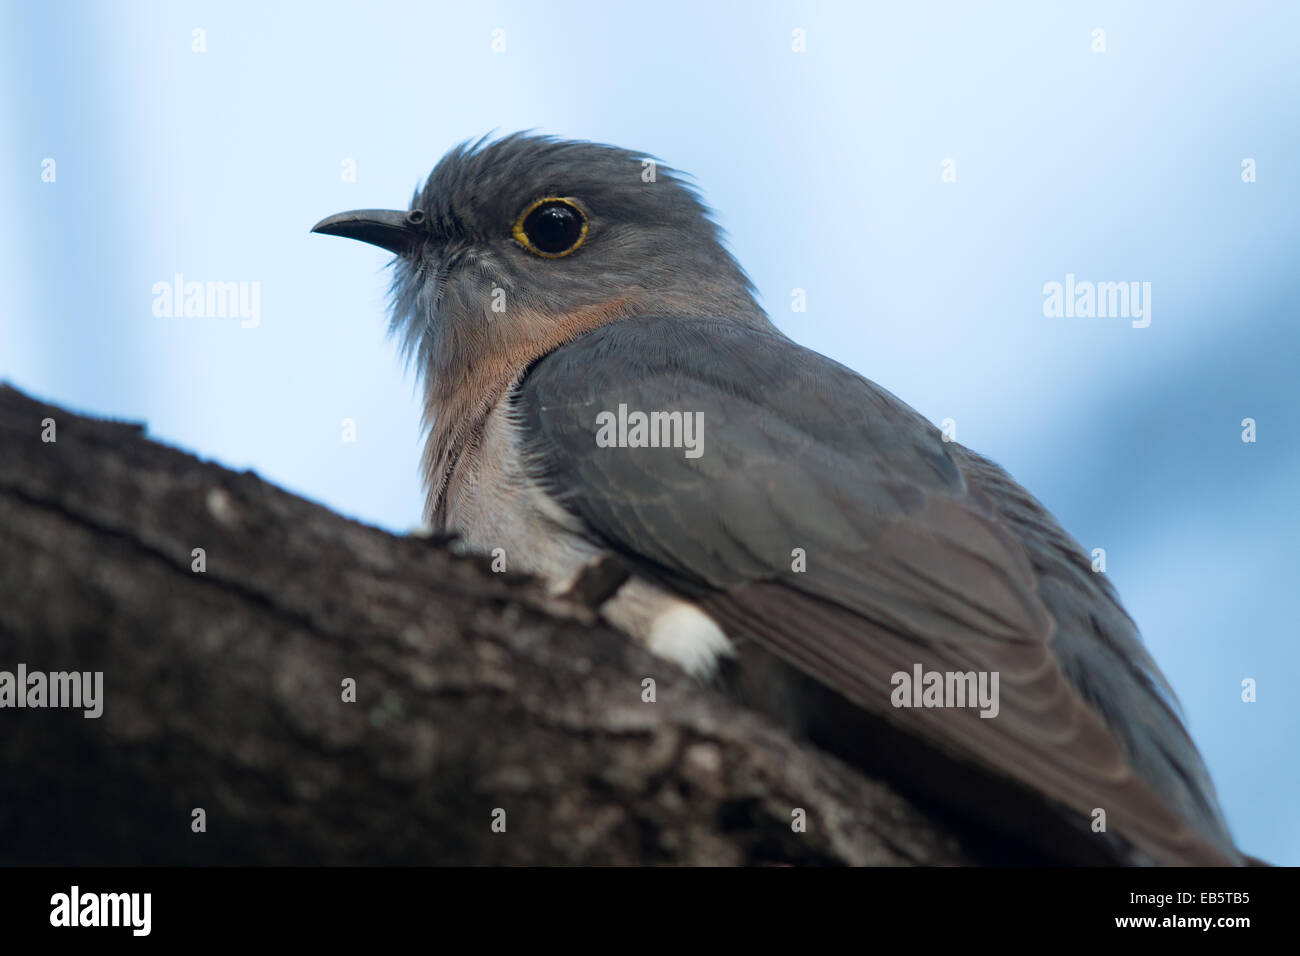 Fan-tailed Cuckoo (Cacomantis flabelliformis) Stock Photo